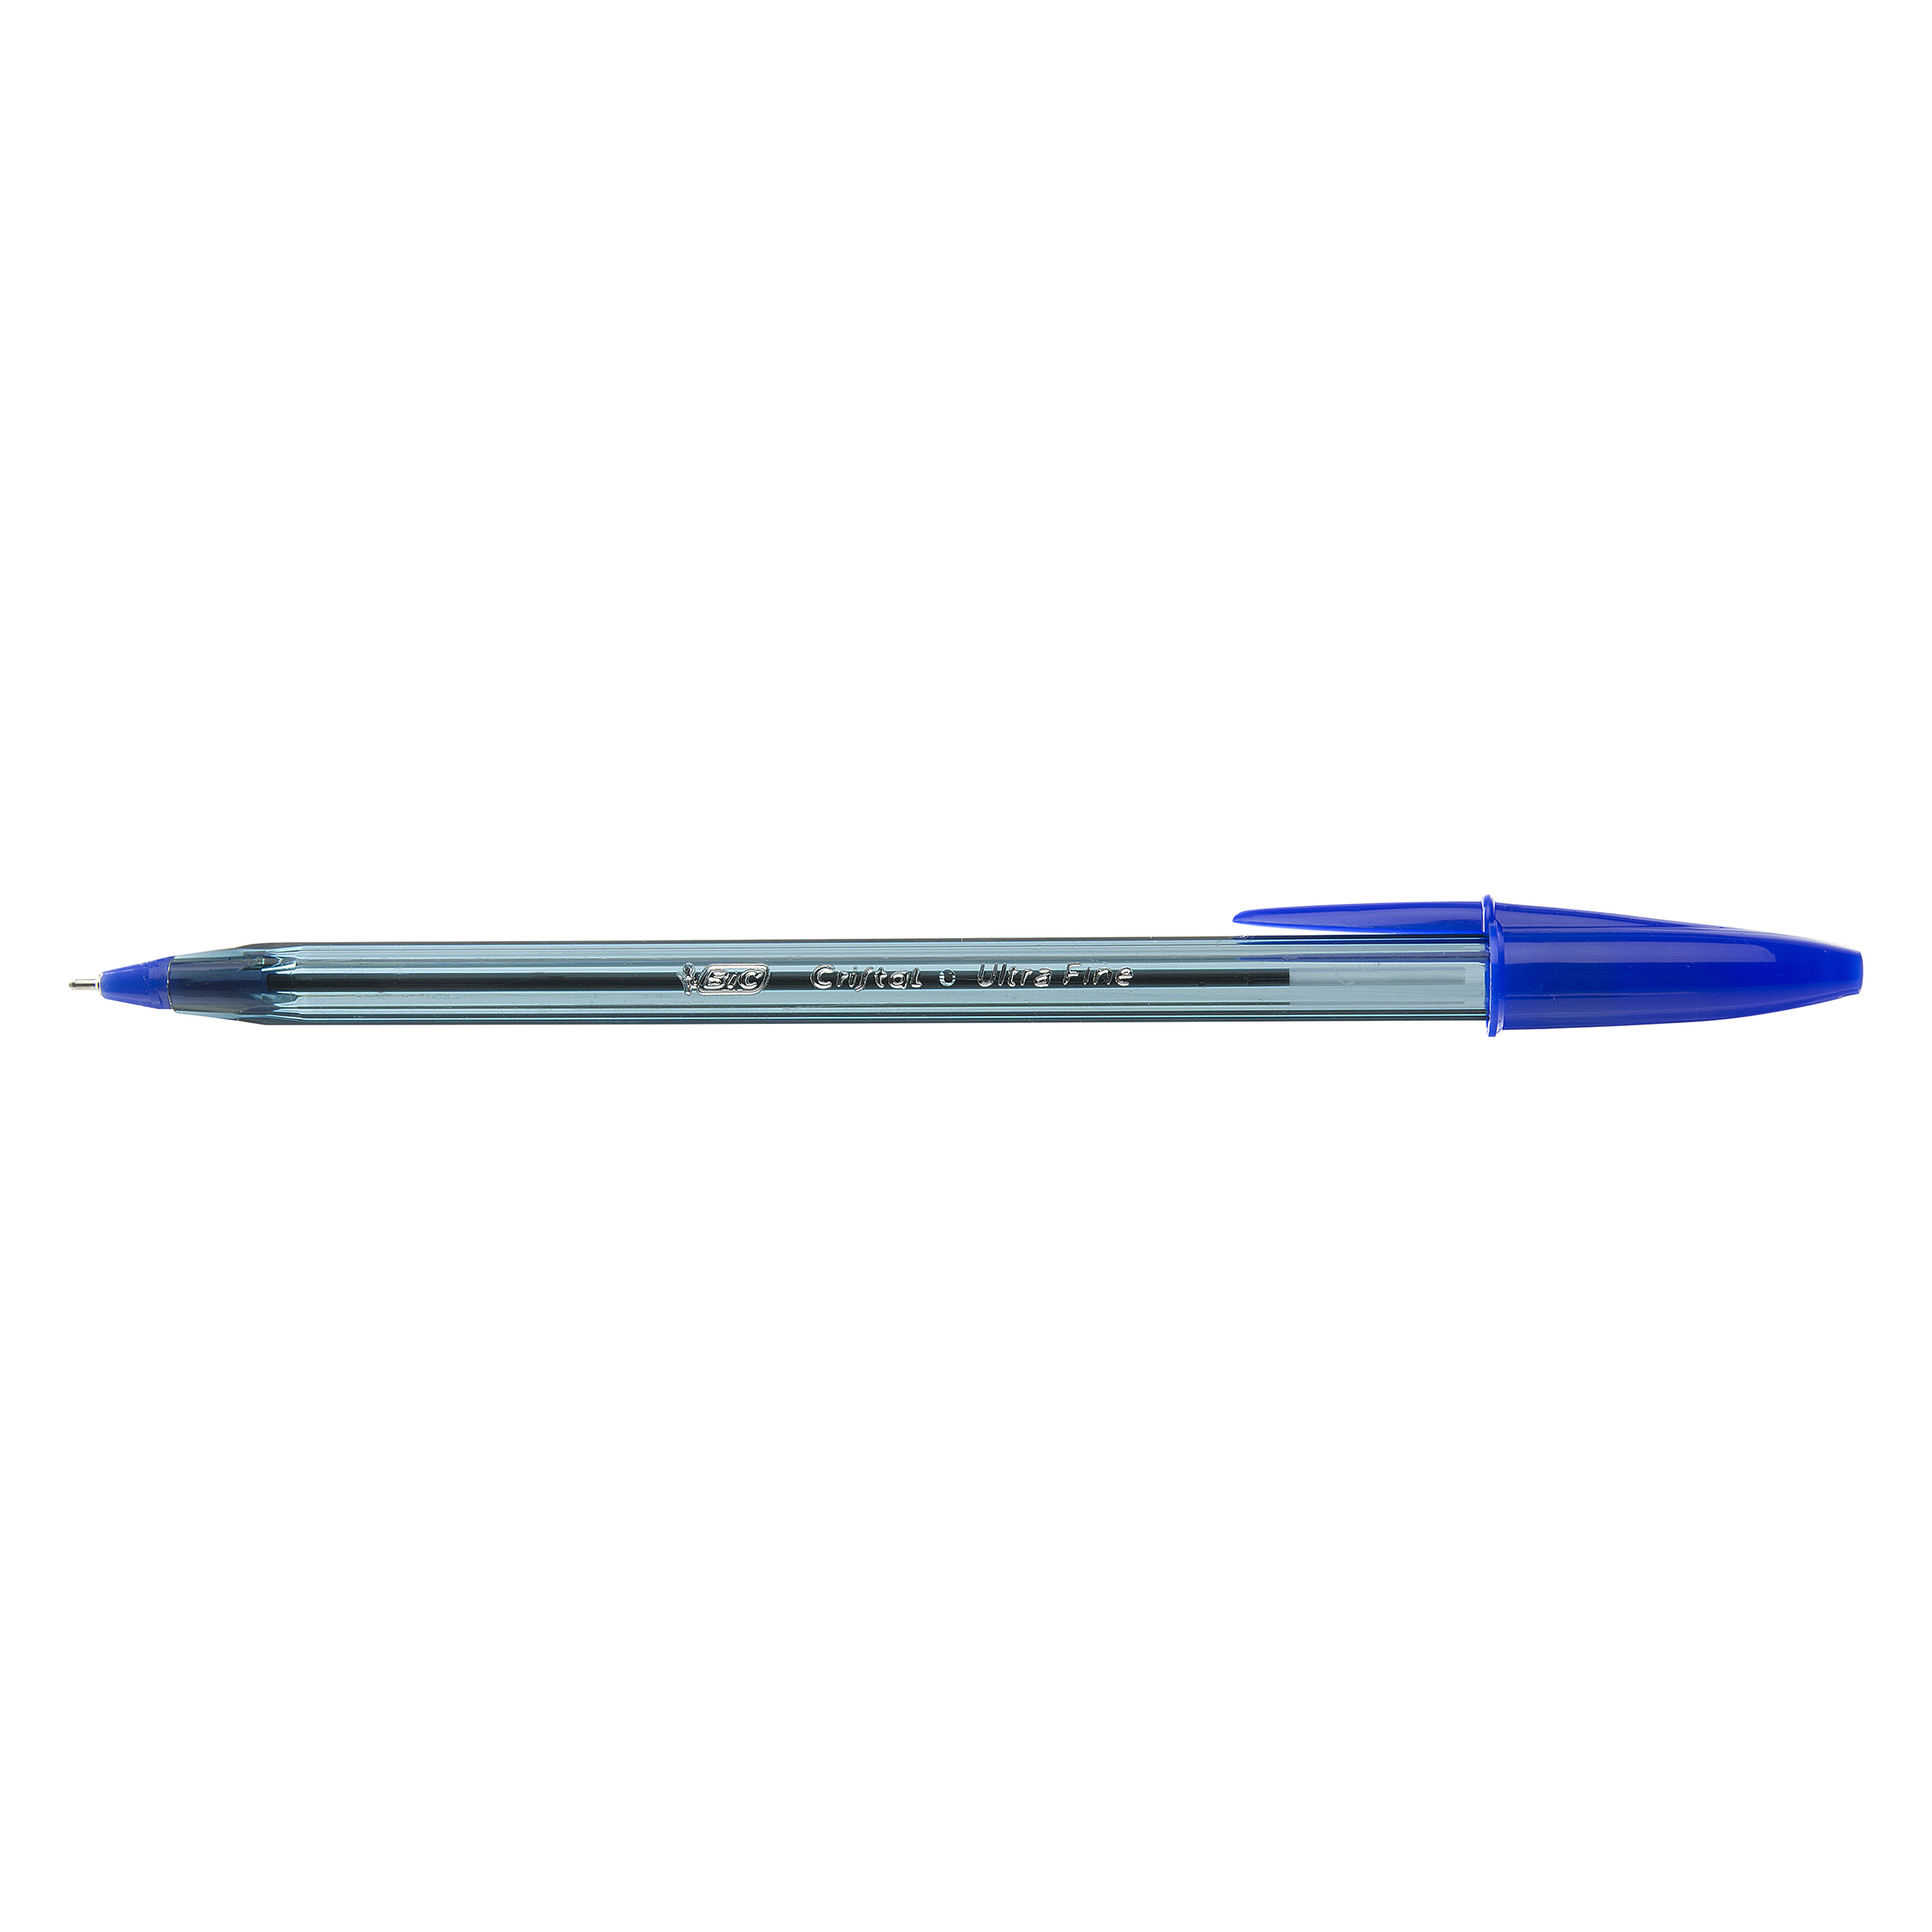 Ball point pens BIC Cristal Exact Ballpoint Pens Ultra Fine 0.7mm Tip Blue Ref 992605 Pack 20